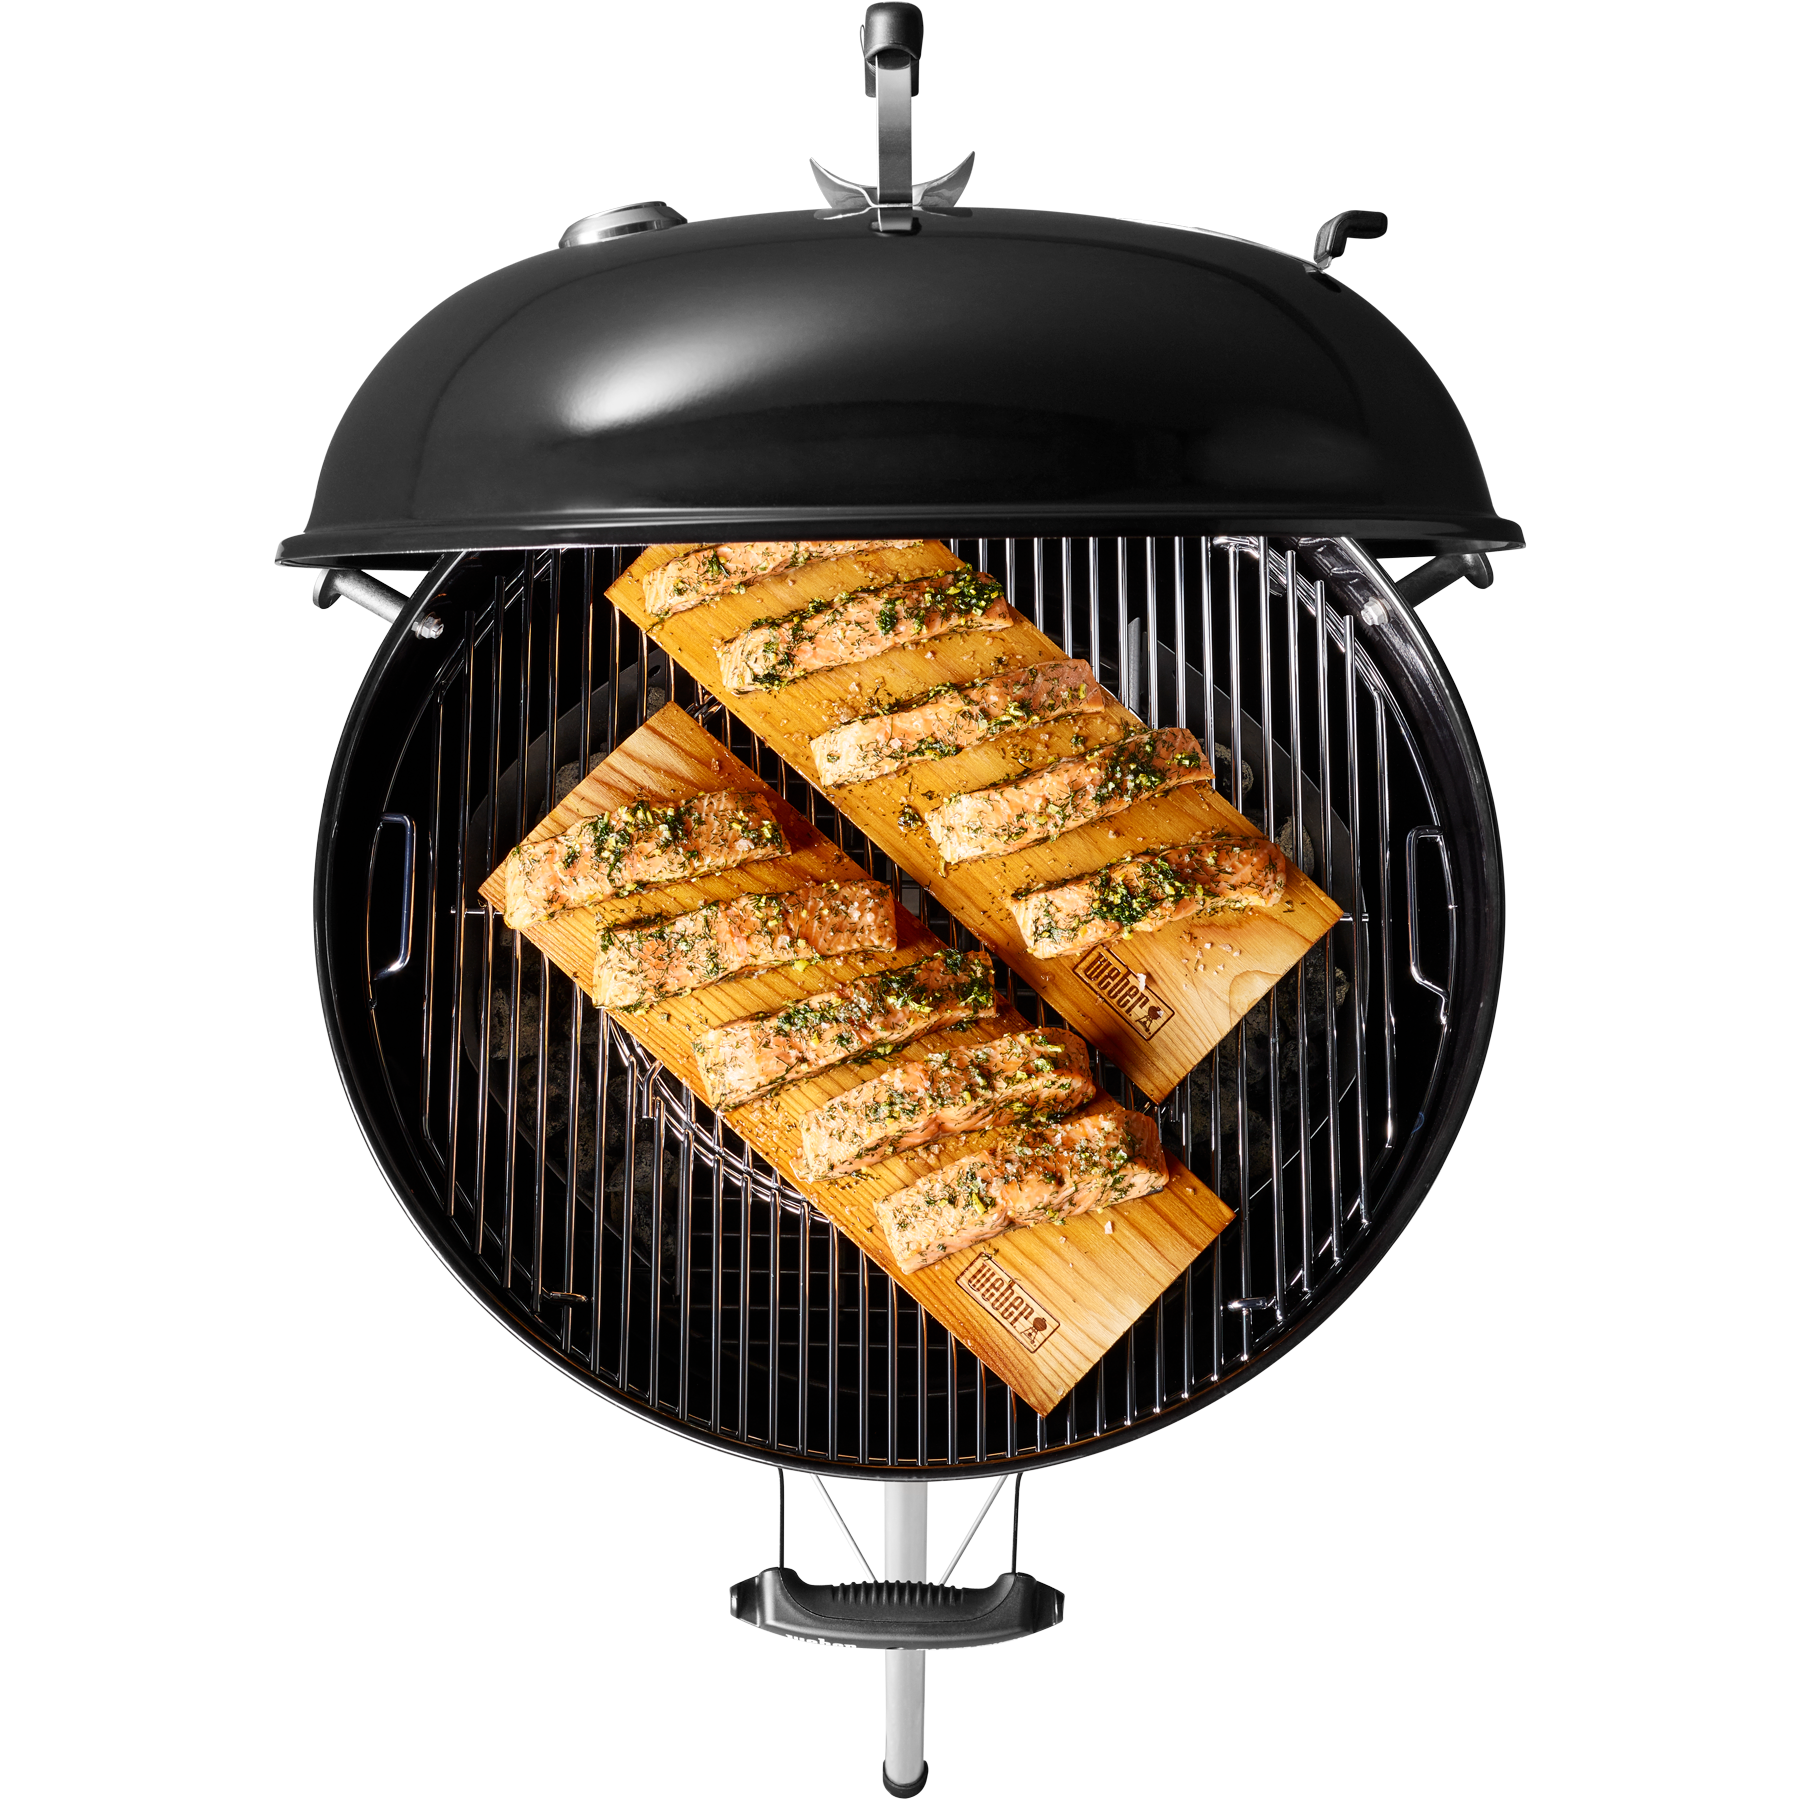 Grill bbq png. Barbecue sauce grilling weber